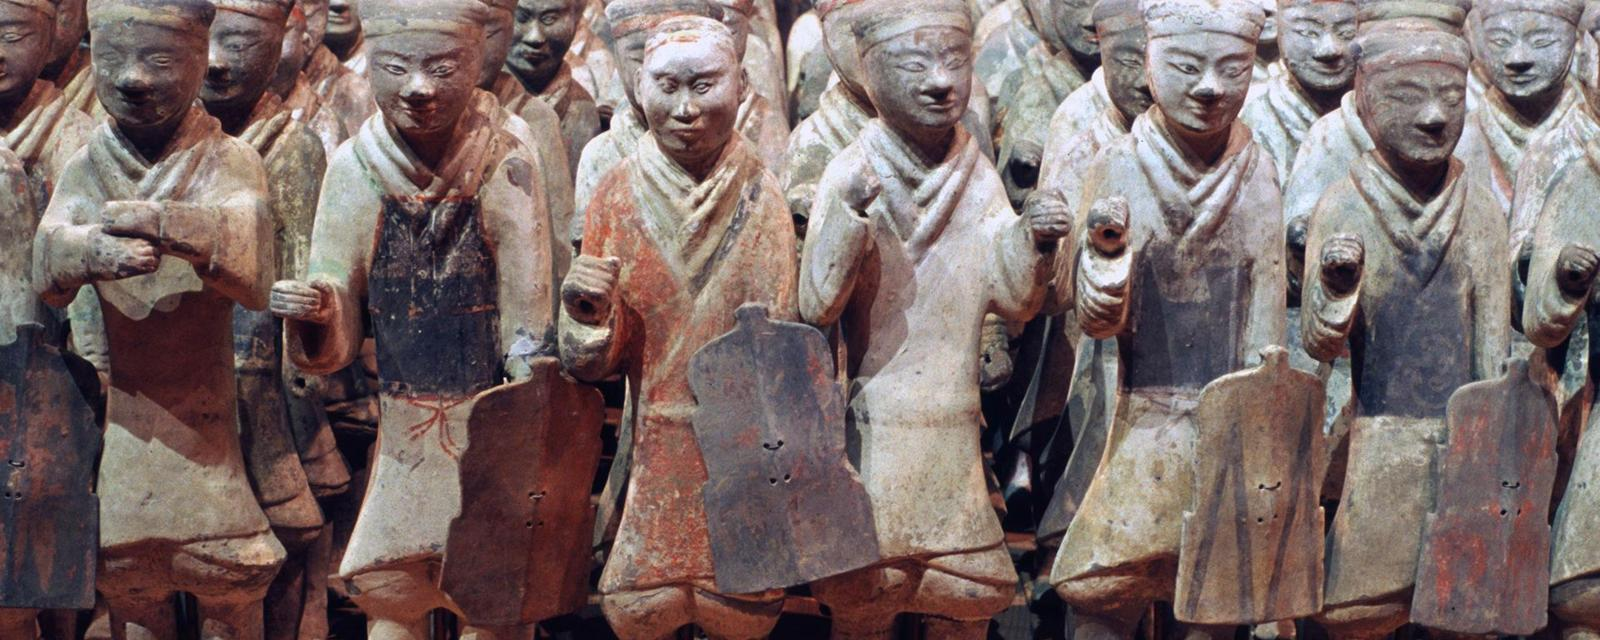 DABF1B The Han Dynasty Terra-cotta Soldiers displayed at Xianyang museum in Xianyang City of Shaanxi Province China. Image shot 2012. Exact date unknown.